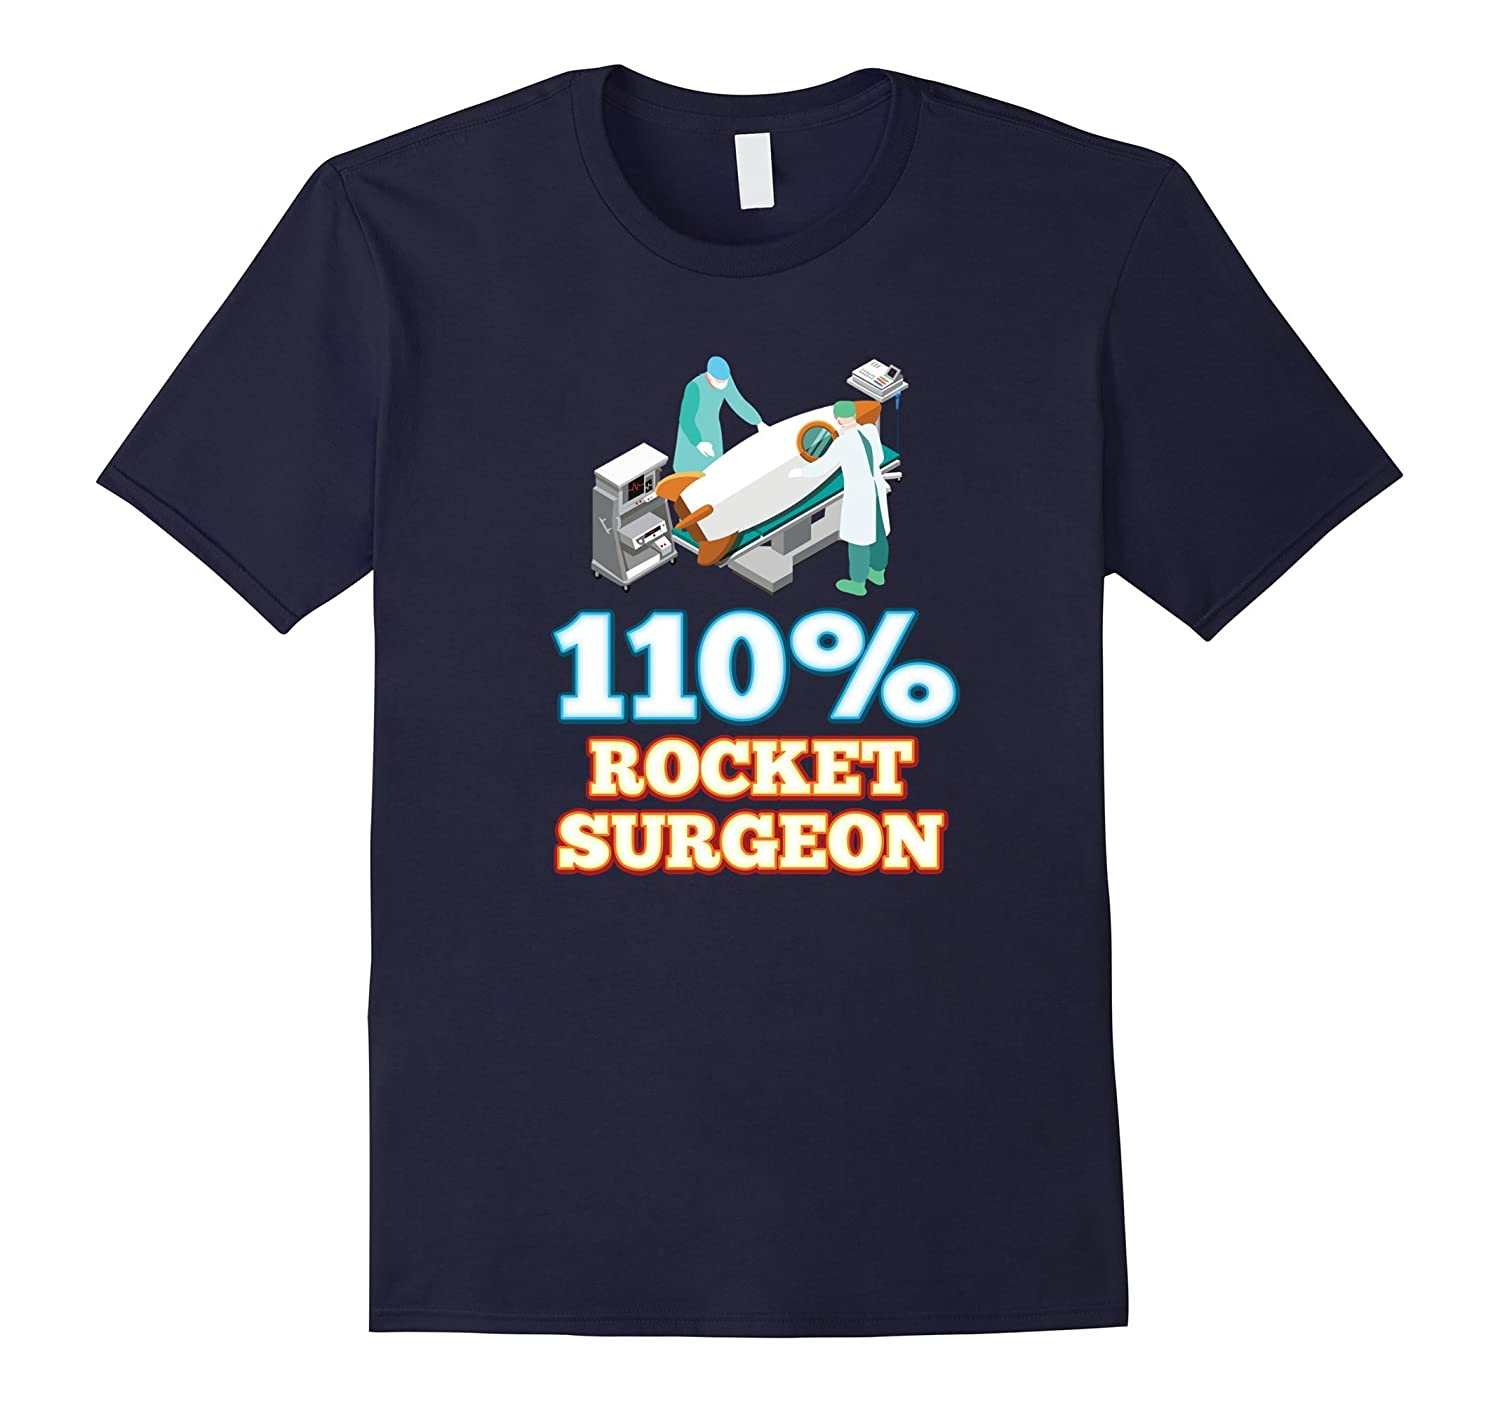 110 Rocket Surgeon Funny Nerd-Geek T-shirt by Zany Brainy-TD